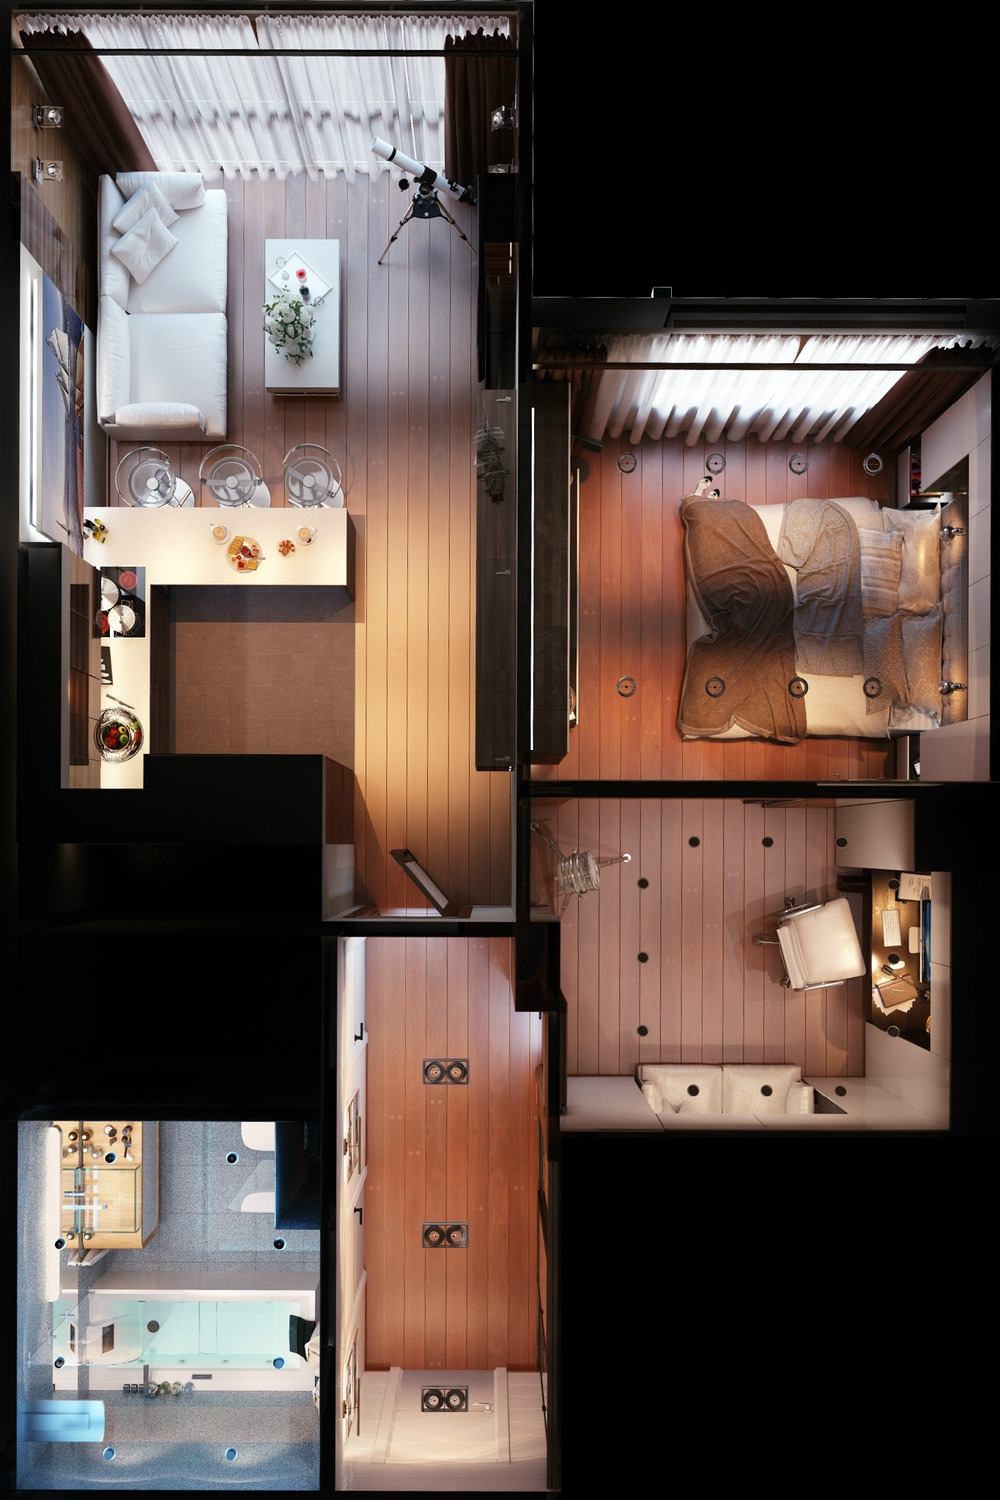 3 distinctly themed apartments under 800 square feet 75 square meter with floor plans